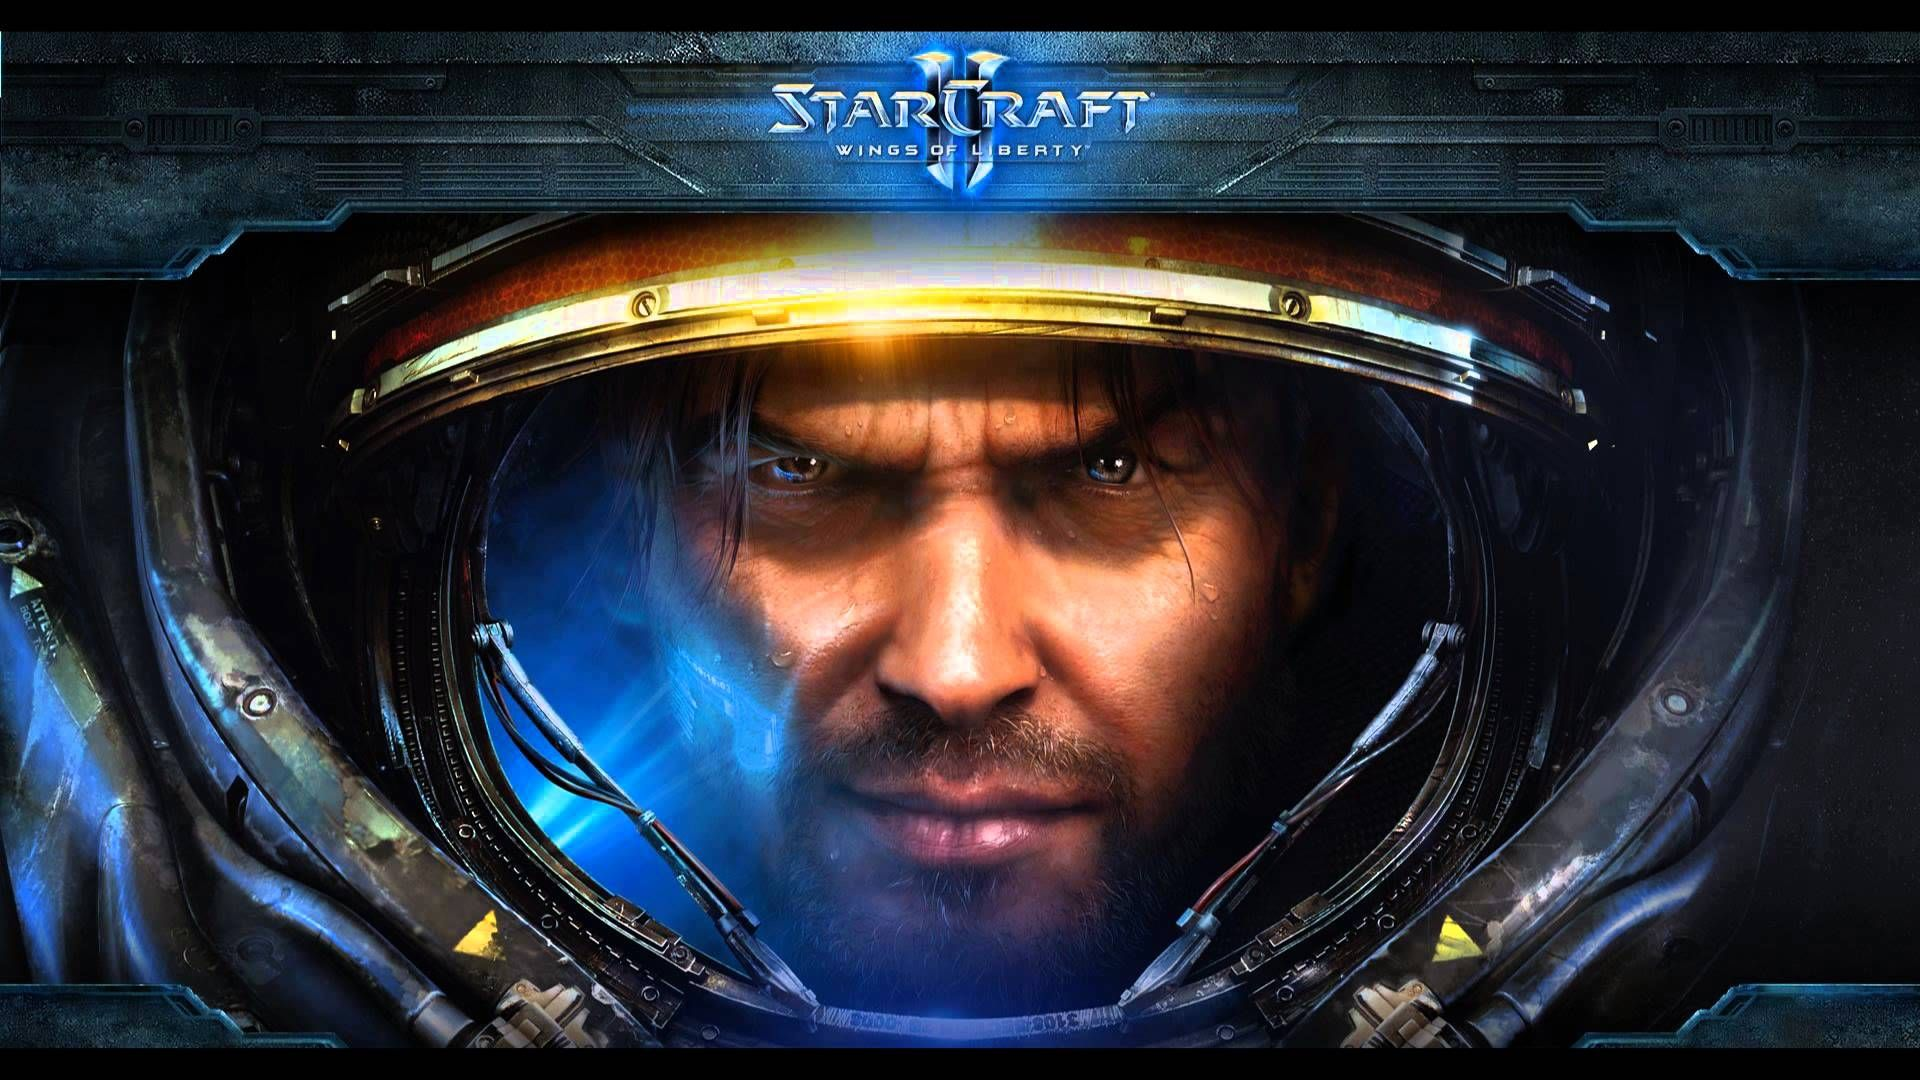 Starcraft 2 prešao na free to play model